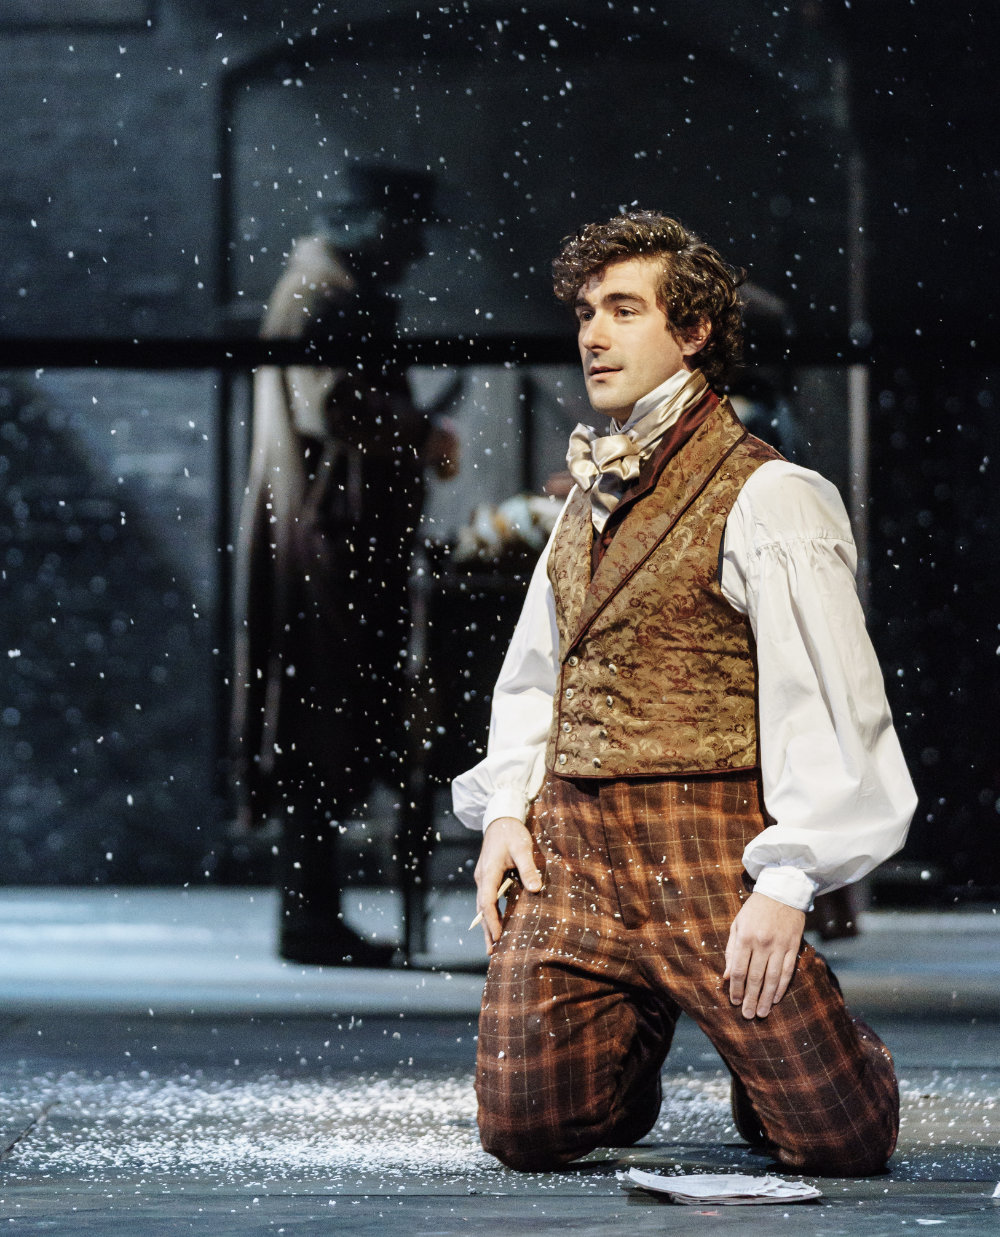 12 Best A Christmas Carol Images On Pinterest: The RSC's A Christmas Carol